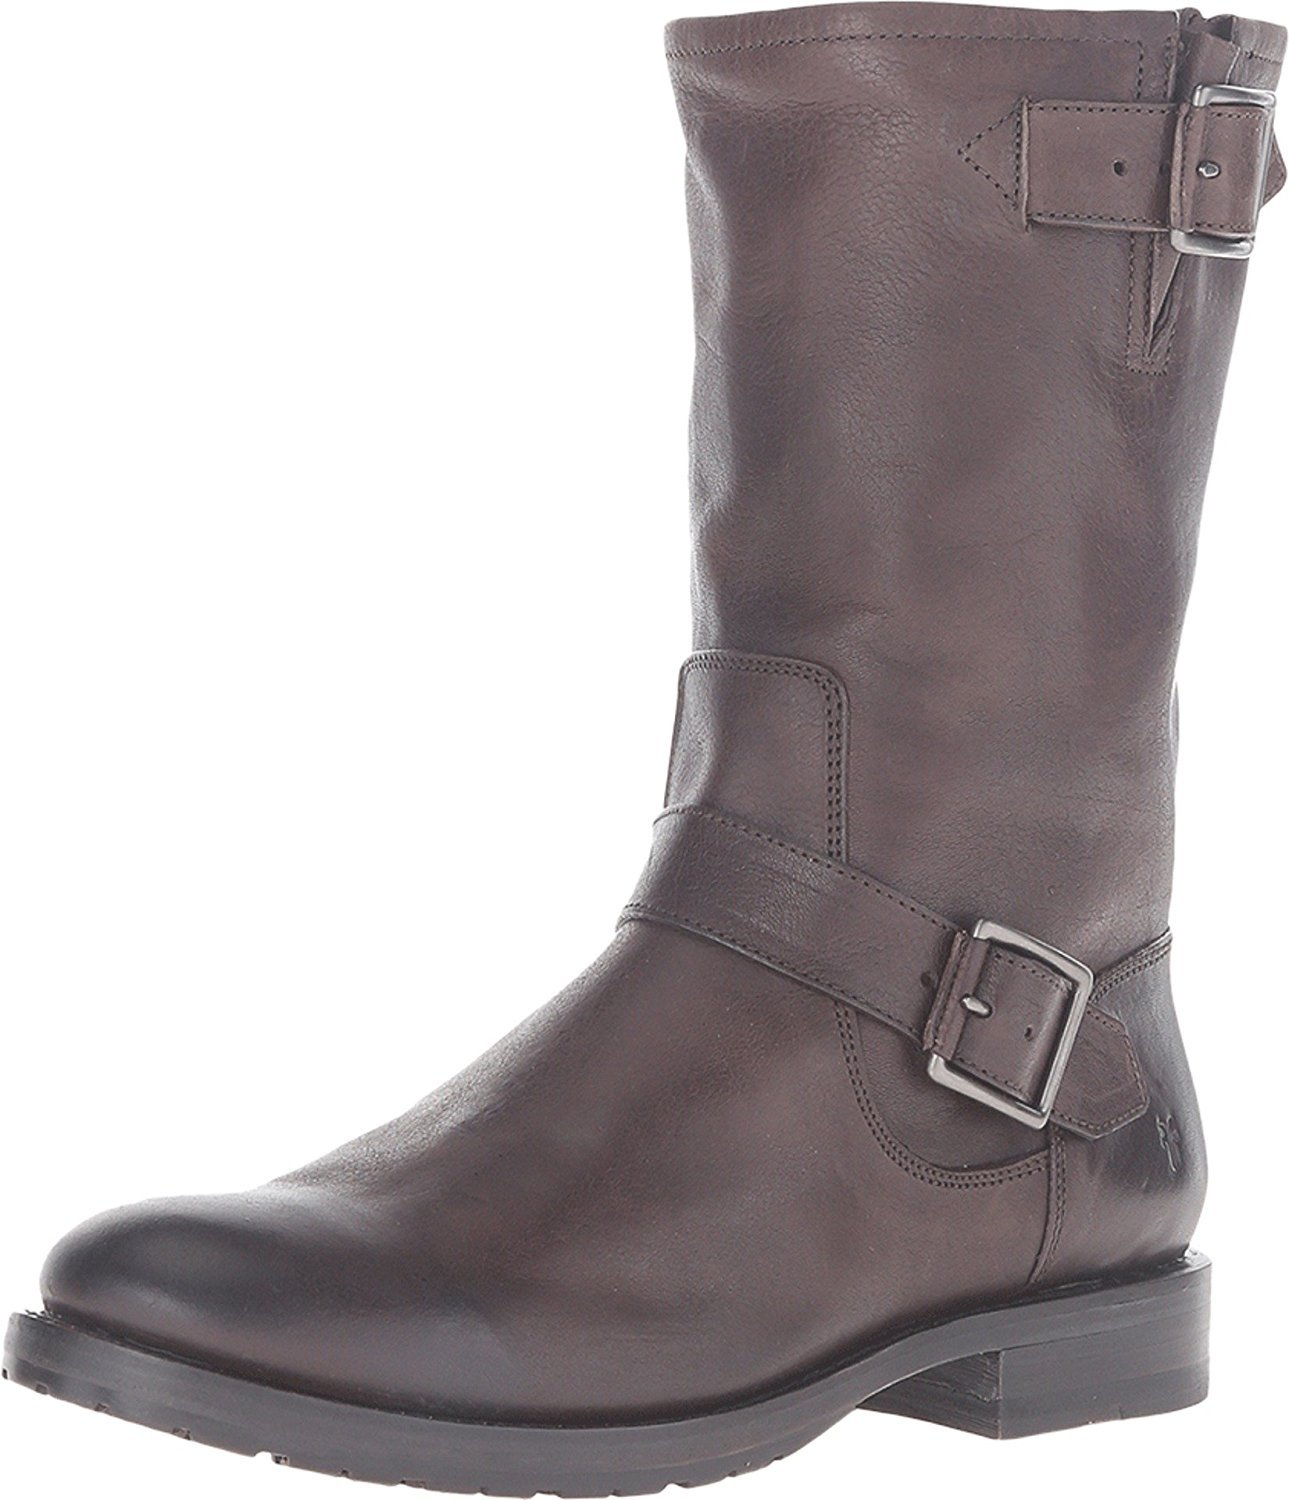 FRYE Women's Natalie Mid Suede Engineer Boot B0193YVQ56 5.5 B(M) US|Charcoal Tumbled Full Grain